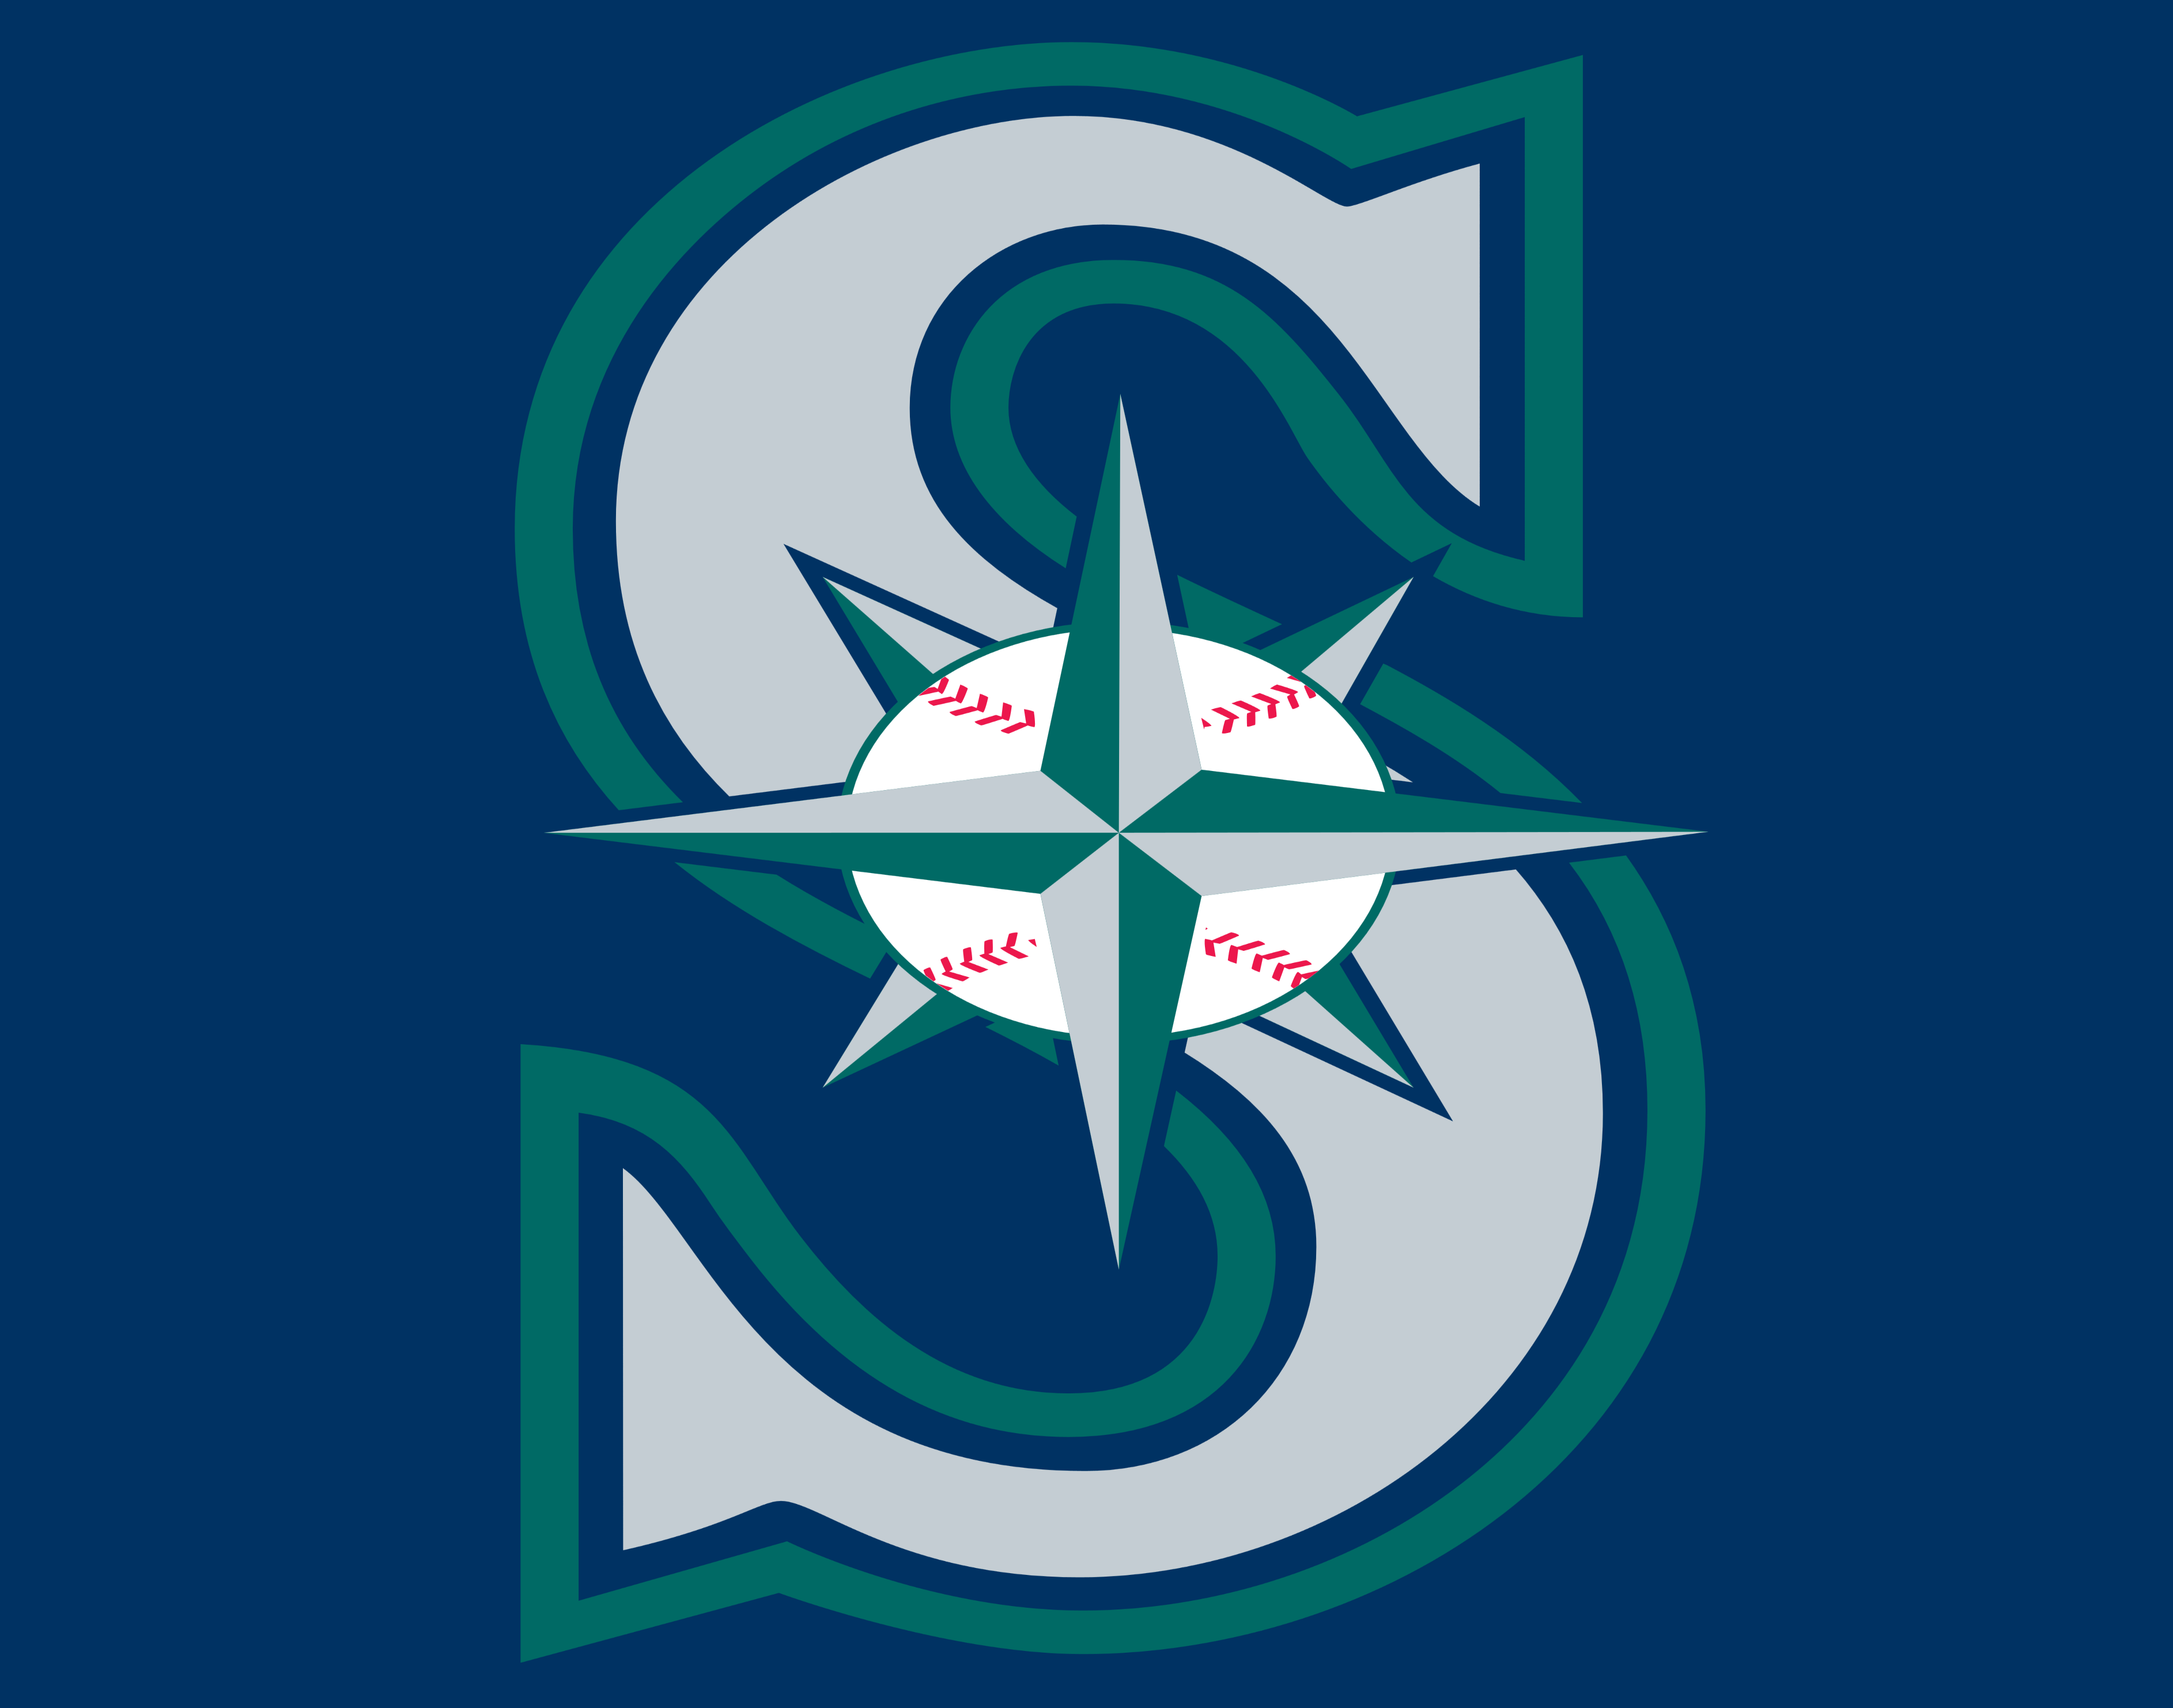 Mariners are now 17-17 on the season